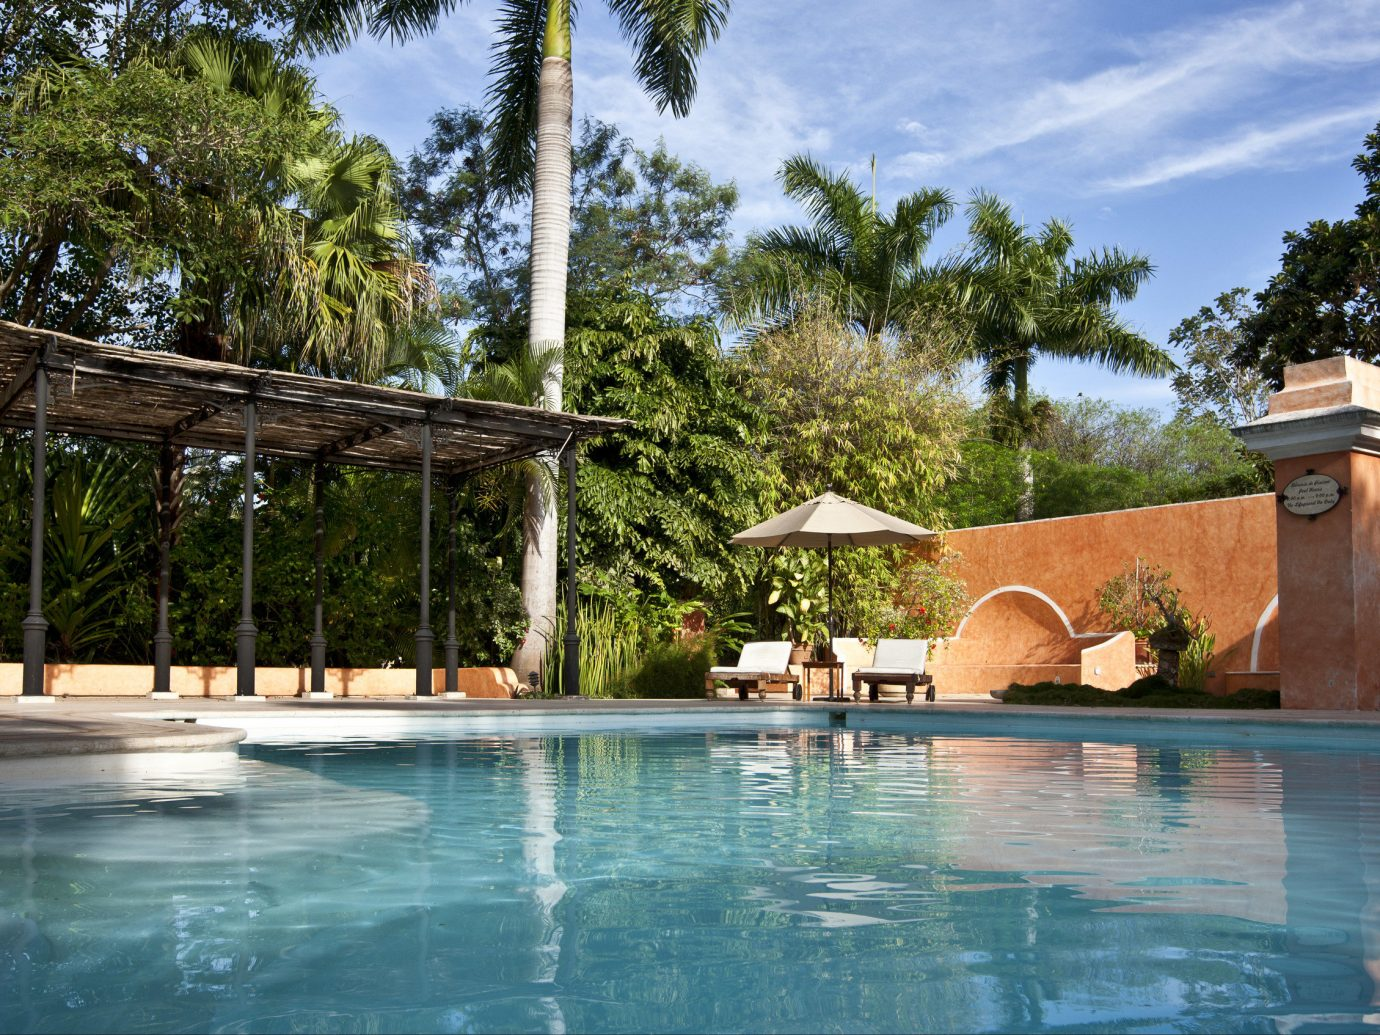 Beach Honeymoon Hotels Mexico Romance Tulum property swimming pool Resort estate leisure real estate water arecales palm tree tree Villa hacienda home outdoor structure house plant water feature